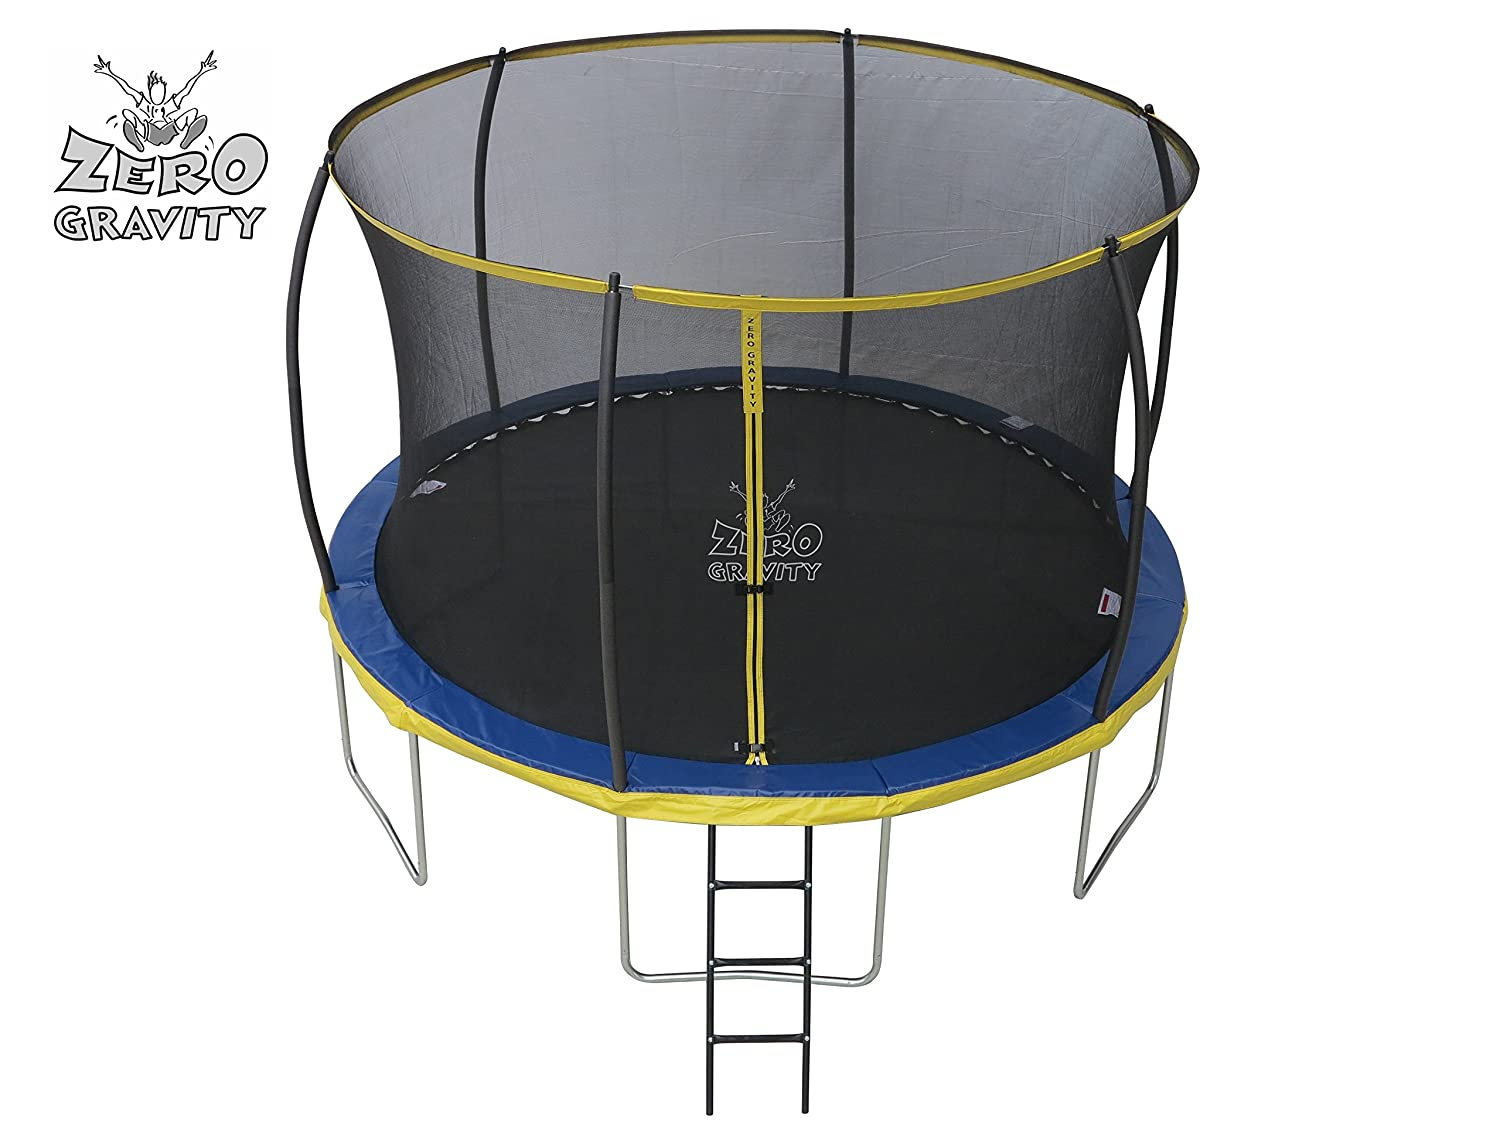 Zero Gravity Kinder Ultima 4 with Safety Enclosure Netting and Ladder High Spec Trampoline 183cm Blue//Yellow